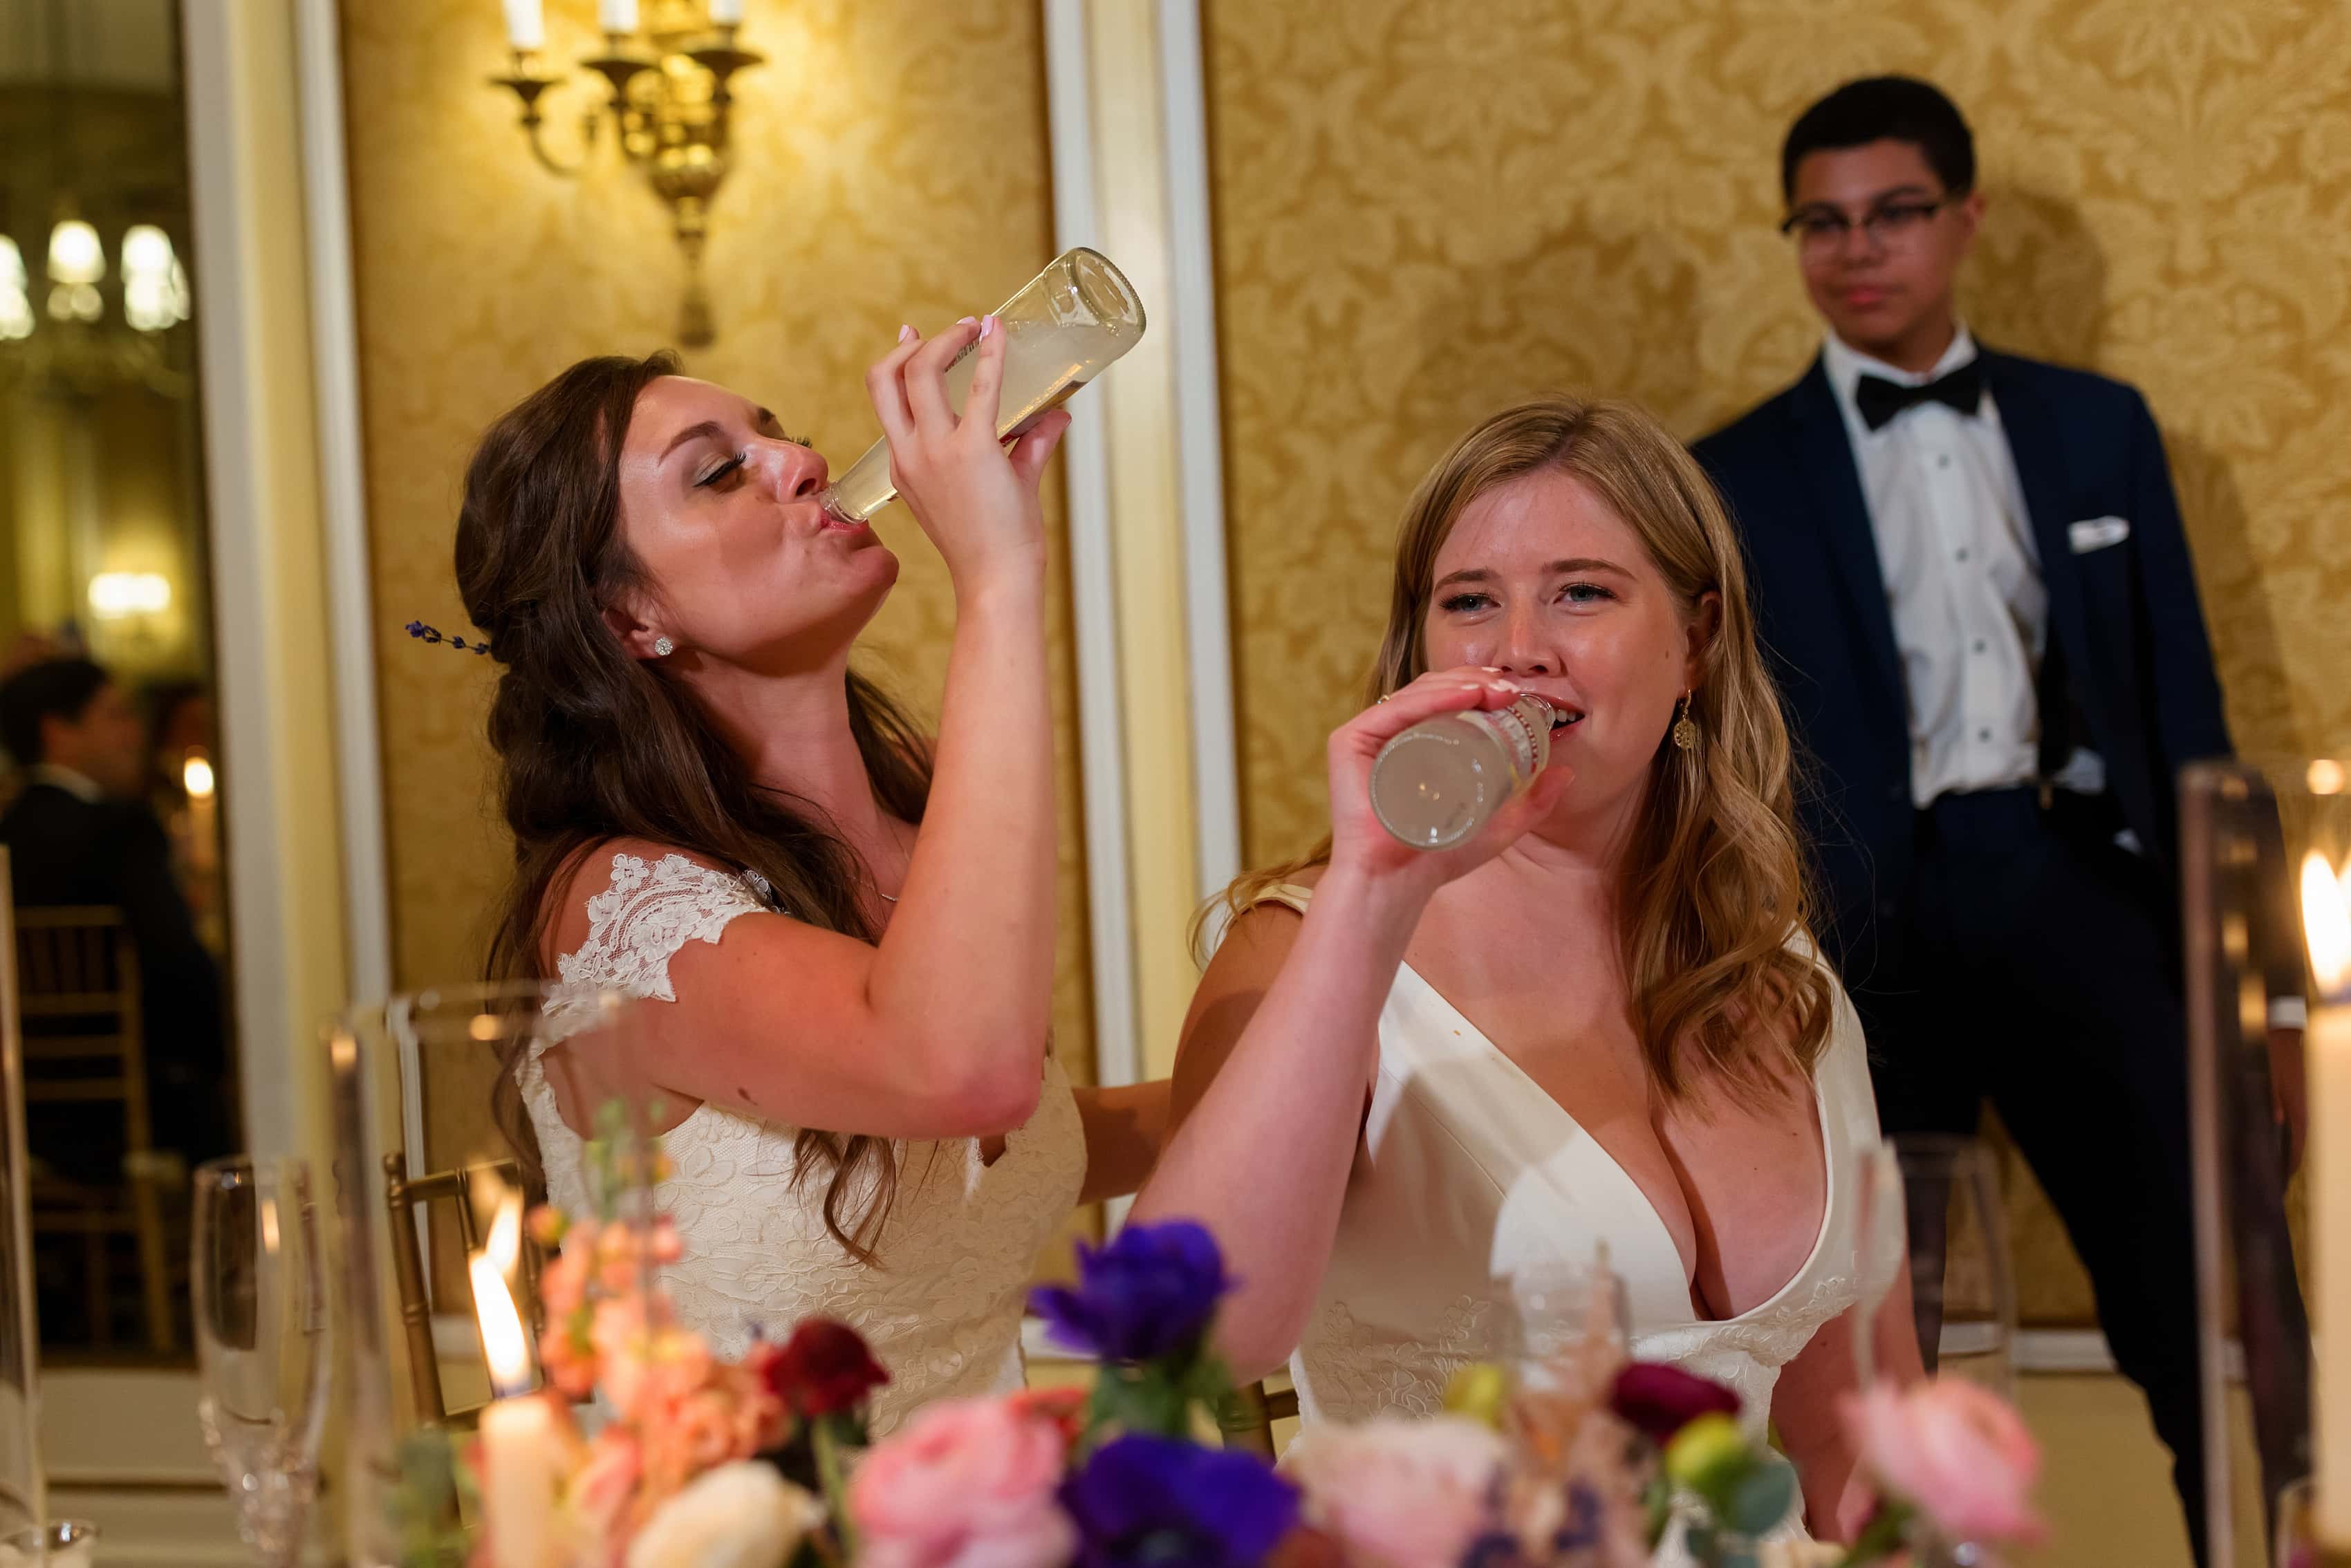 brides drink smirnoff ice as part of a prank during wedding reception toasts